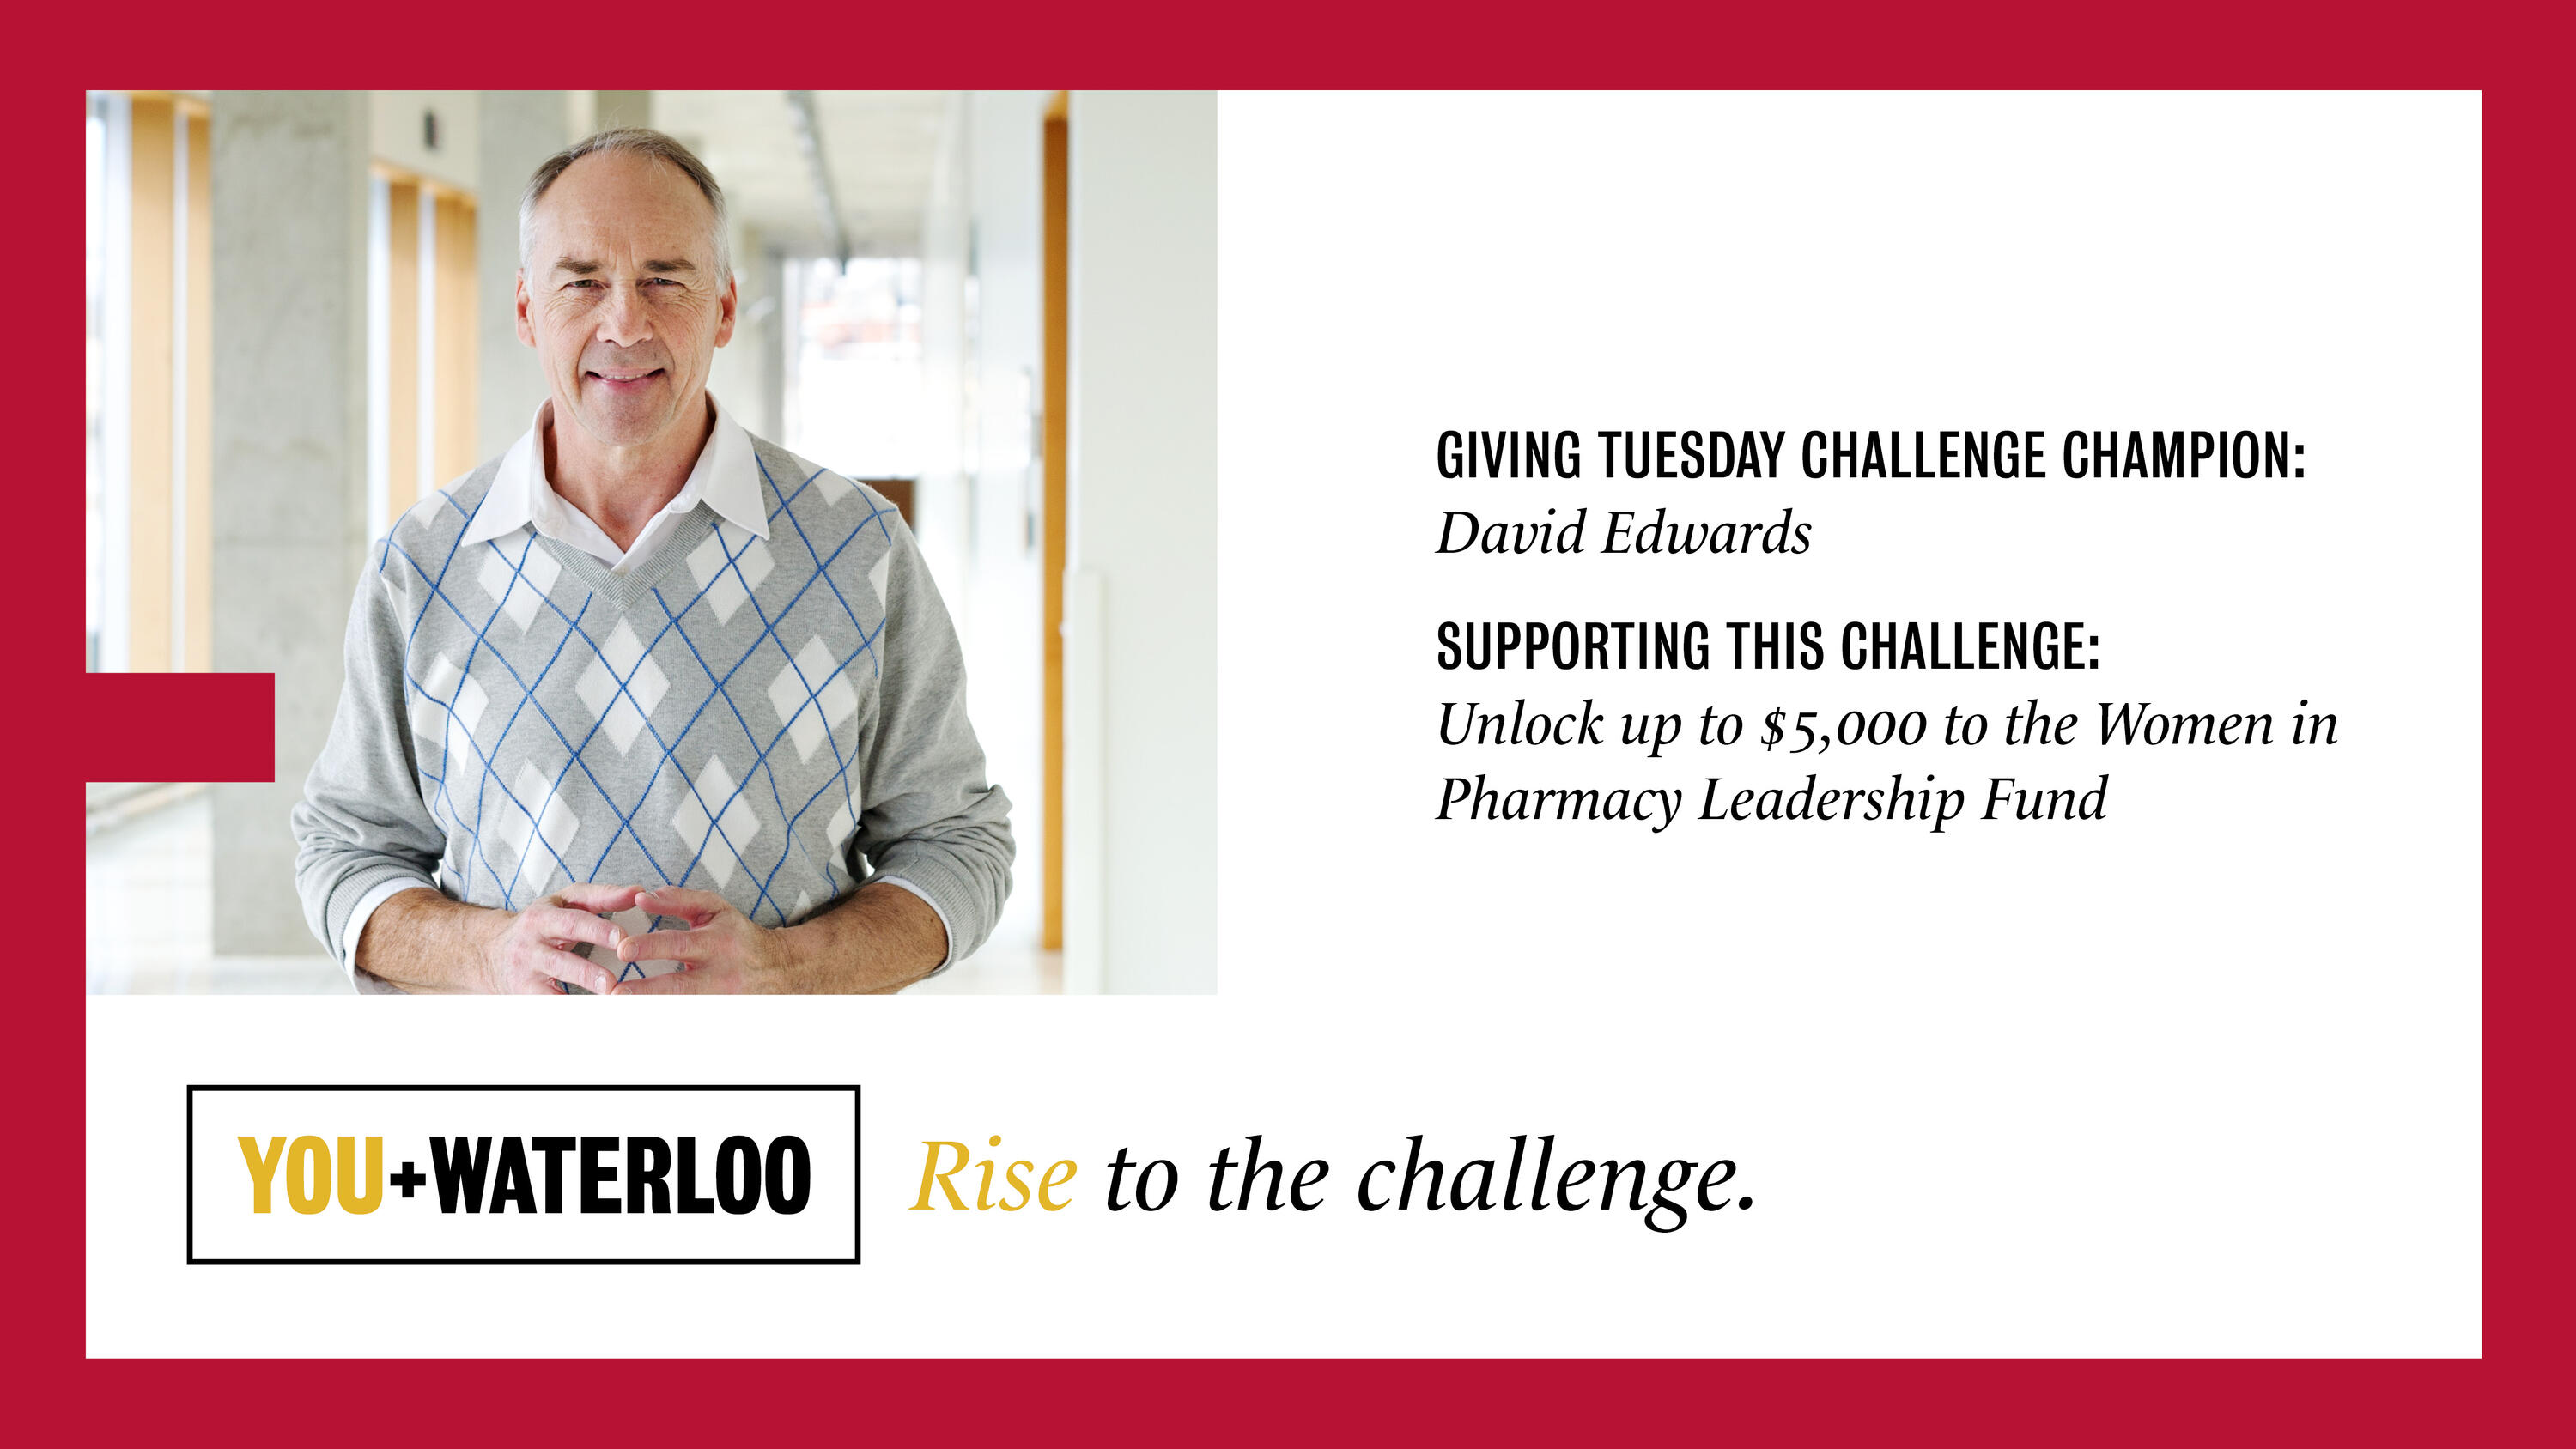 Giving Tues Challenge Champion: David Edwards. Supporting challenge to unlock up to $5,000 to Women in Pharmacy Leadership Fund